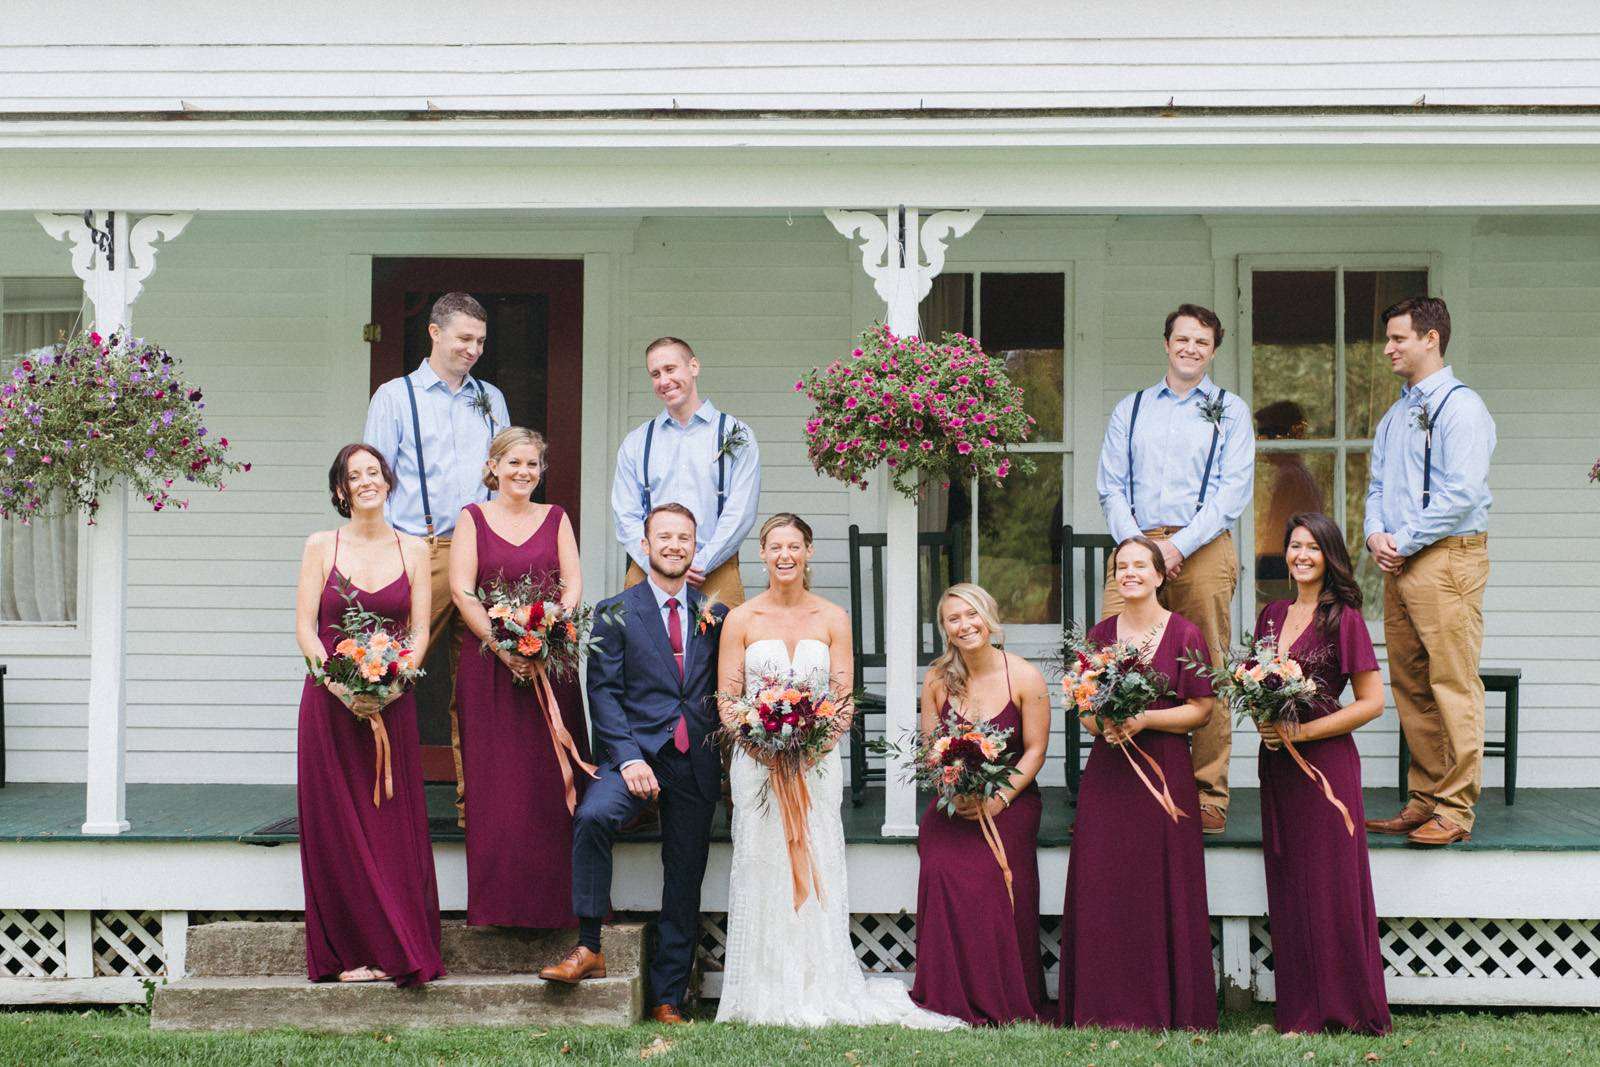 Portrait of wedding party with bridesmaids in burgundy dresses and groomsmen wearing blue shirts and